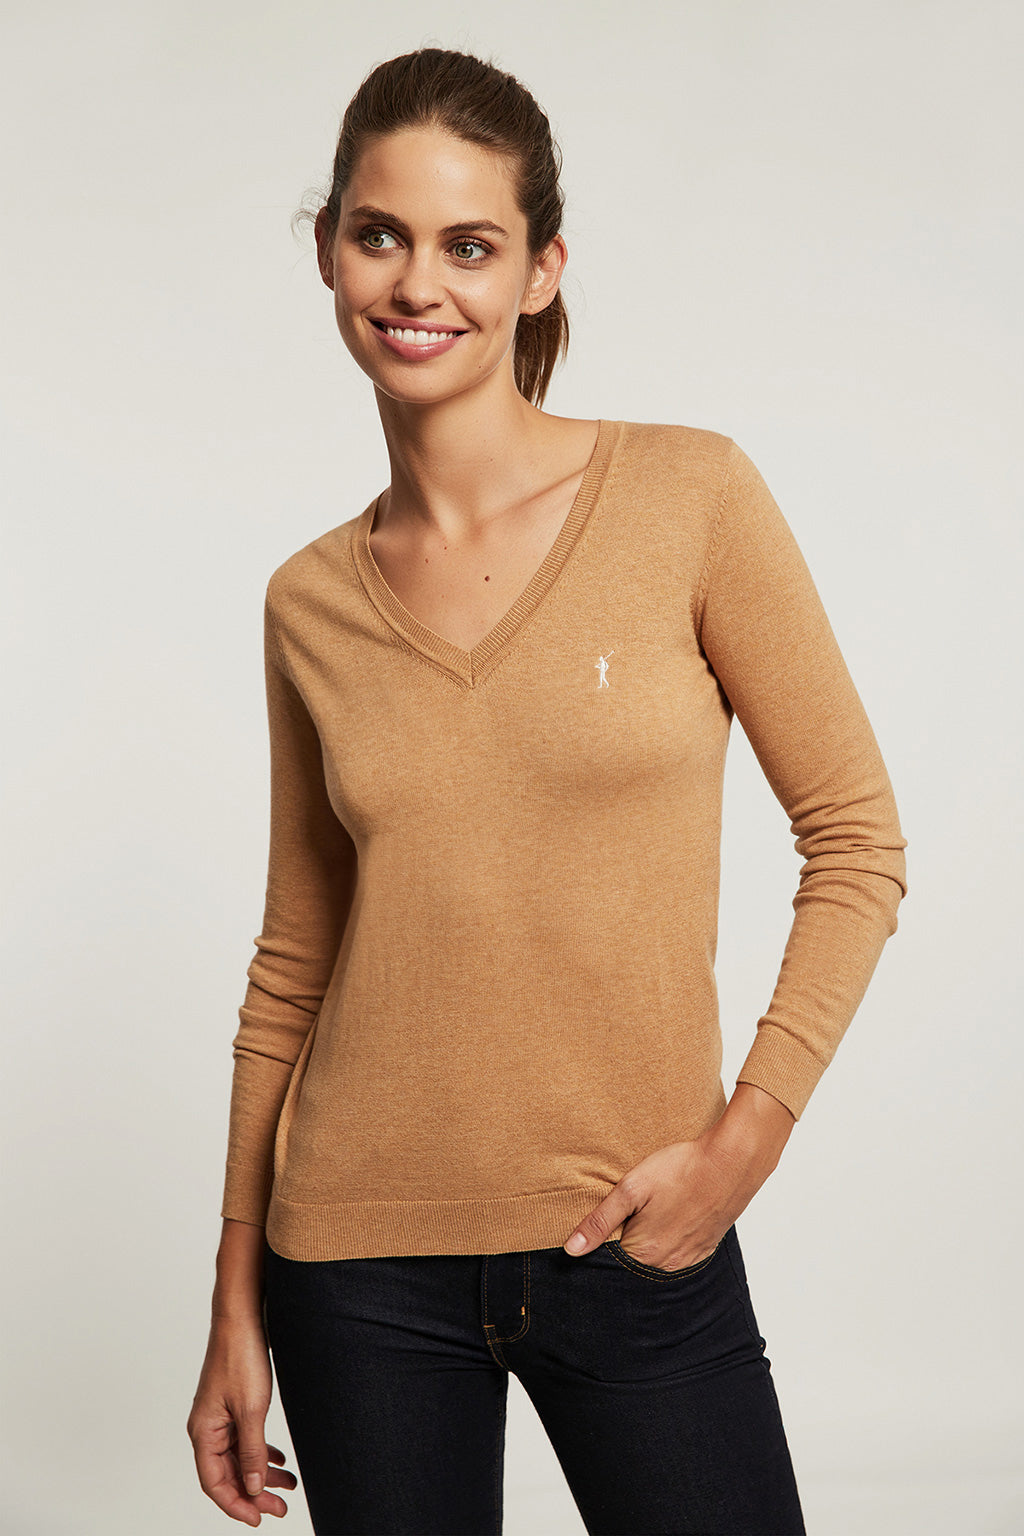 Caramel V-neck light jumper